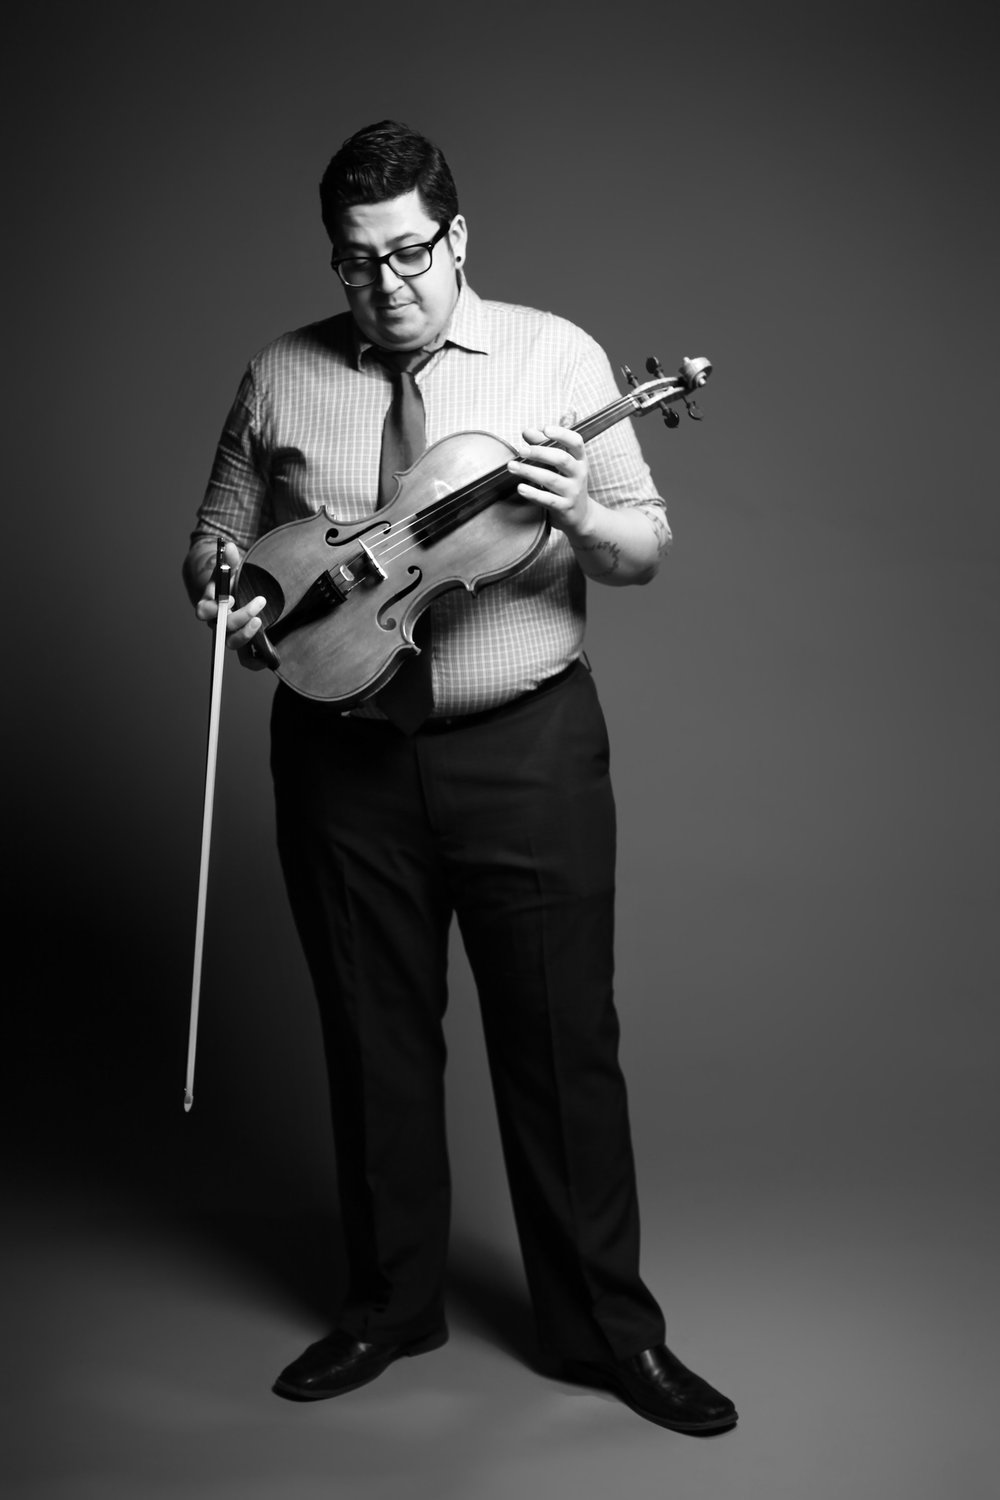 "Composer and instrumentalist Sean Neukom began his violin studies at the age of three at joint lessons with his brother, Jason. These lessons, taught by their father, laid the foundation for an intense love, respect, and appreciation for music and for making music as brothers. This love of music took Sean to Minot State University where he received a Bachelor in Music degree, under Dr. Jon Rumney. While at MSU Sean's musical curiosity lead to the start of compositions in the form of exercises. Following Minot, Sean went on to the Cleveland Institute of Music to earn a Master of Music degree in violin performance under the violin division head at the time, David Updegraff. Sean's mainstay as a performer is as the violist, and as a founding member, of Beo String Quartet. Prior to Beo String Quartet, Sean played violin in the Milhaud Trio for three years. (In 2007 the Milhaud Trio gave one of the few American performances of Darius Milhaud's only piano trio with the composer's wife in attendance.) Additionally, Sean studied the inner workings of chamber music extensively with members of the Ying Quartet and with Peter Salaff of the Cleveland Quartet. When not performing with Beo String Quartet, Sean is the principal 2nd violin with the West Virginia Symphony Orchestra. Leading up to the winning of this post, Sean played violin in many top ensembles including the Nashville Symphony and the New Zealand based Southern Sinfonia. As a composer, Sean's works cover a wide range of styles. His concert works have been commissioned by organizations such as the Pittsburgh New Music Ensemble, the Charlotte-based Fresh Ink new music series, the innovative multi-media music and dance group Cadence Collective out of Milwaukee, and most recently by the Dayton Philharmonic Orchestra (DPO). The DPO commissioned Sean to write a violin concerto for their illustrious concertmaster, Jessica Hung Calligan, and will be premiering the work in May 2018. Sean's pop-art works are self produced and are approached through the same creative means as his concert works, but with the goal of reaching ears both in and out of a concert hall. Such albums include The Ghost & Mr. Able, Dead Reckoning, and a yet to be named new album currently being composed. Beo String Quartet, being joined by two other stunning musicians, will be starting to perform these albums live in 2017 under the name of ""The Beo Plug-In"". An awareness of the changing ways in which music is consumed and produced in the 21st century has lead Sean to really consider how music groups and organizations are managed. His first step into such waters was with the organization named Symbiotic Collusion that ran from 2011 to 2014. This group was run as a for-profit outfit and with the notion that by having products and services to sell one could finance their own artistic projects. Elements of this have been brought to Beo String Quartet but with the necessary tweaks all endeavors require. Sean believes that music is one of the most enriching elements for humankind and that the modern musician needs to know how to market and illicit a call to action just as well as play their instrument. This combination of an intense love for chamber music, a desire to connect different audiences through like music, and a practiced sense of entrepreneurship through music has shaped Sean's early and developing career."